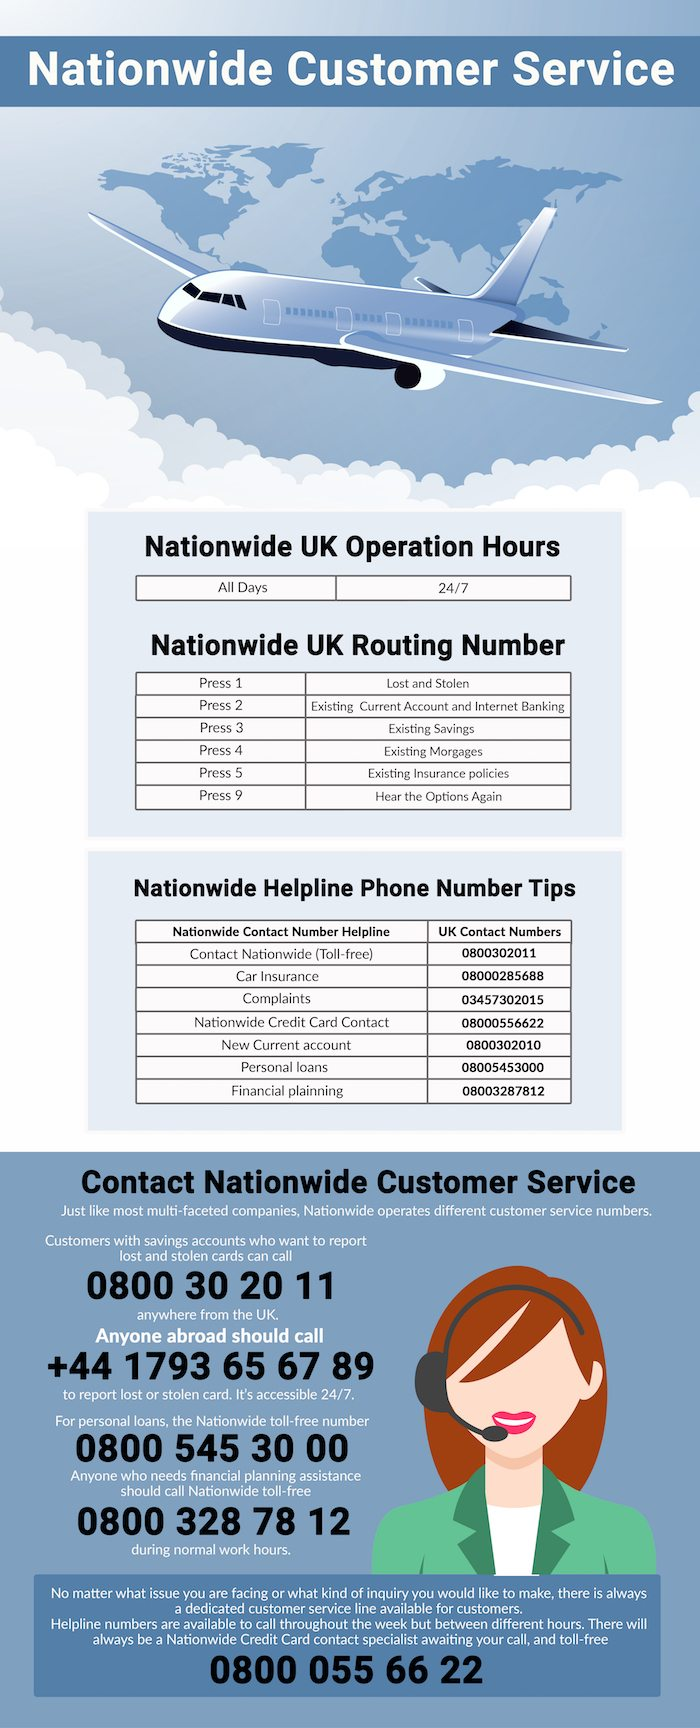 Nationwide Customer Service Numbers Direct Call On 0844 3069132